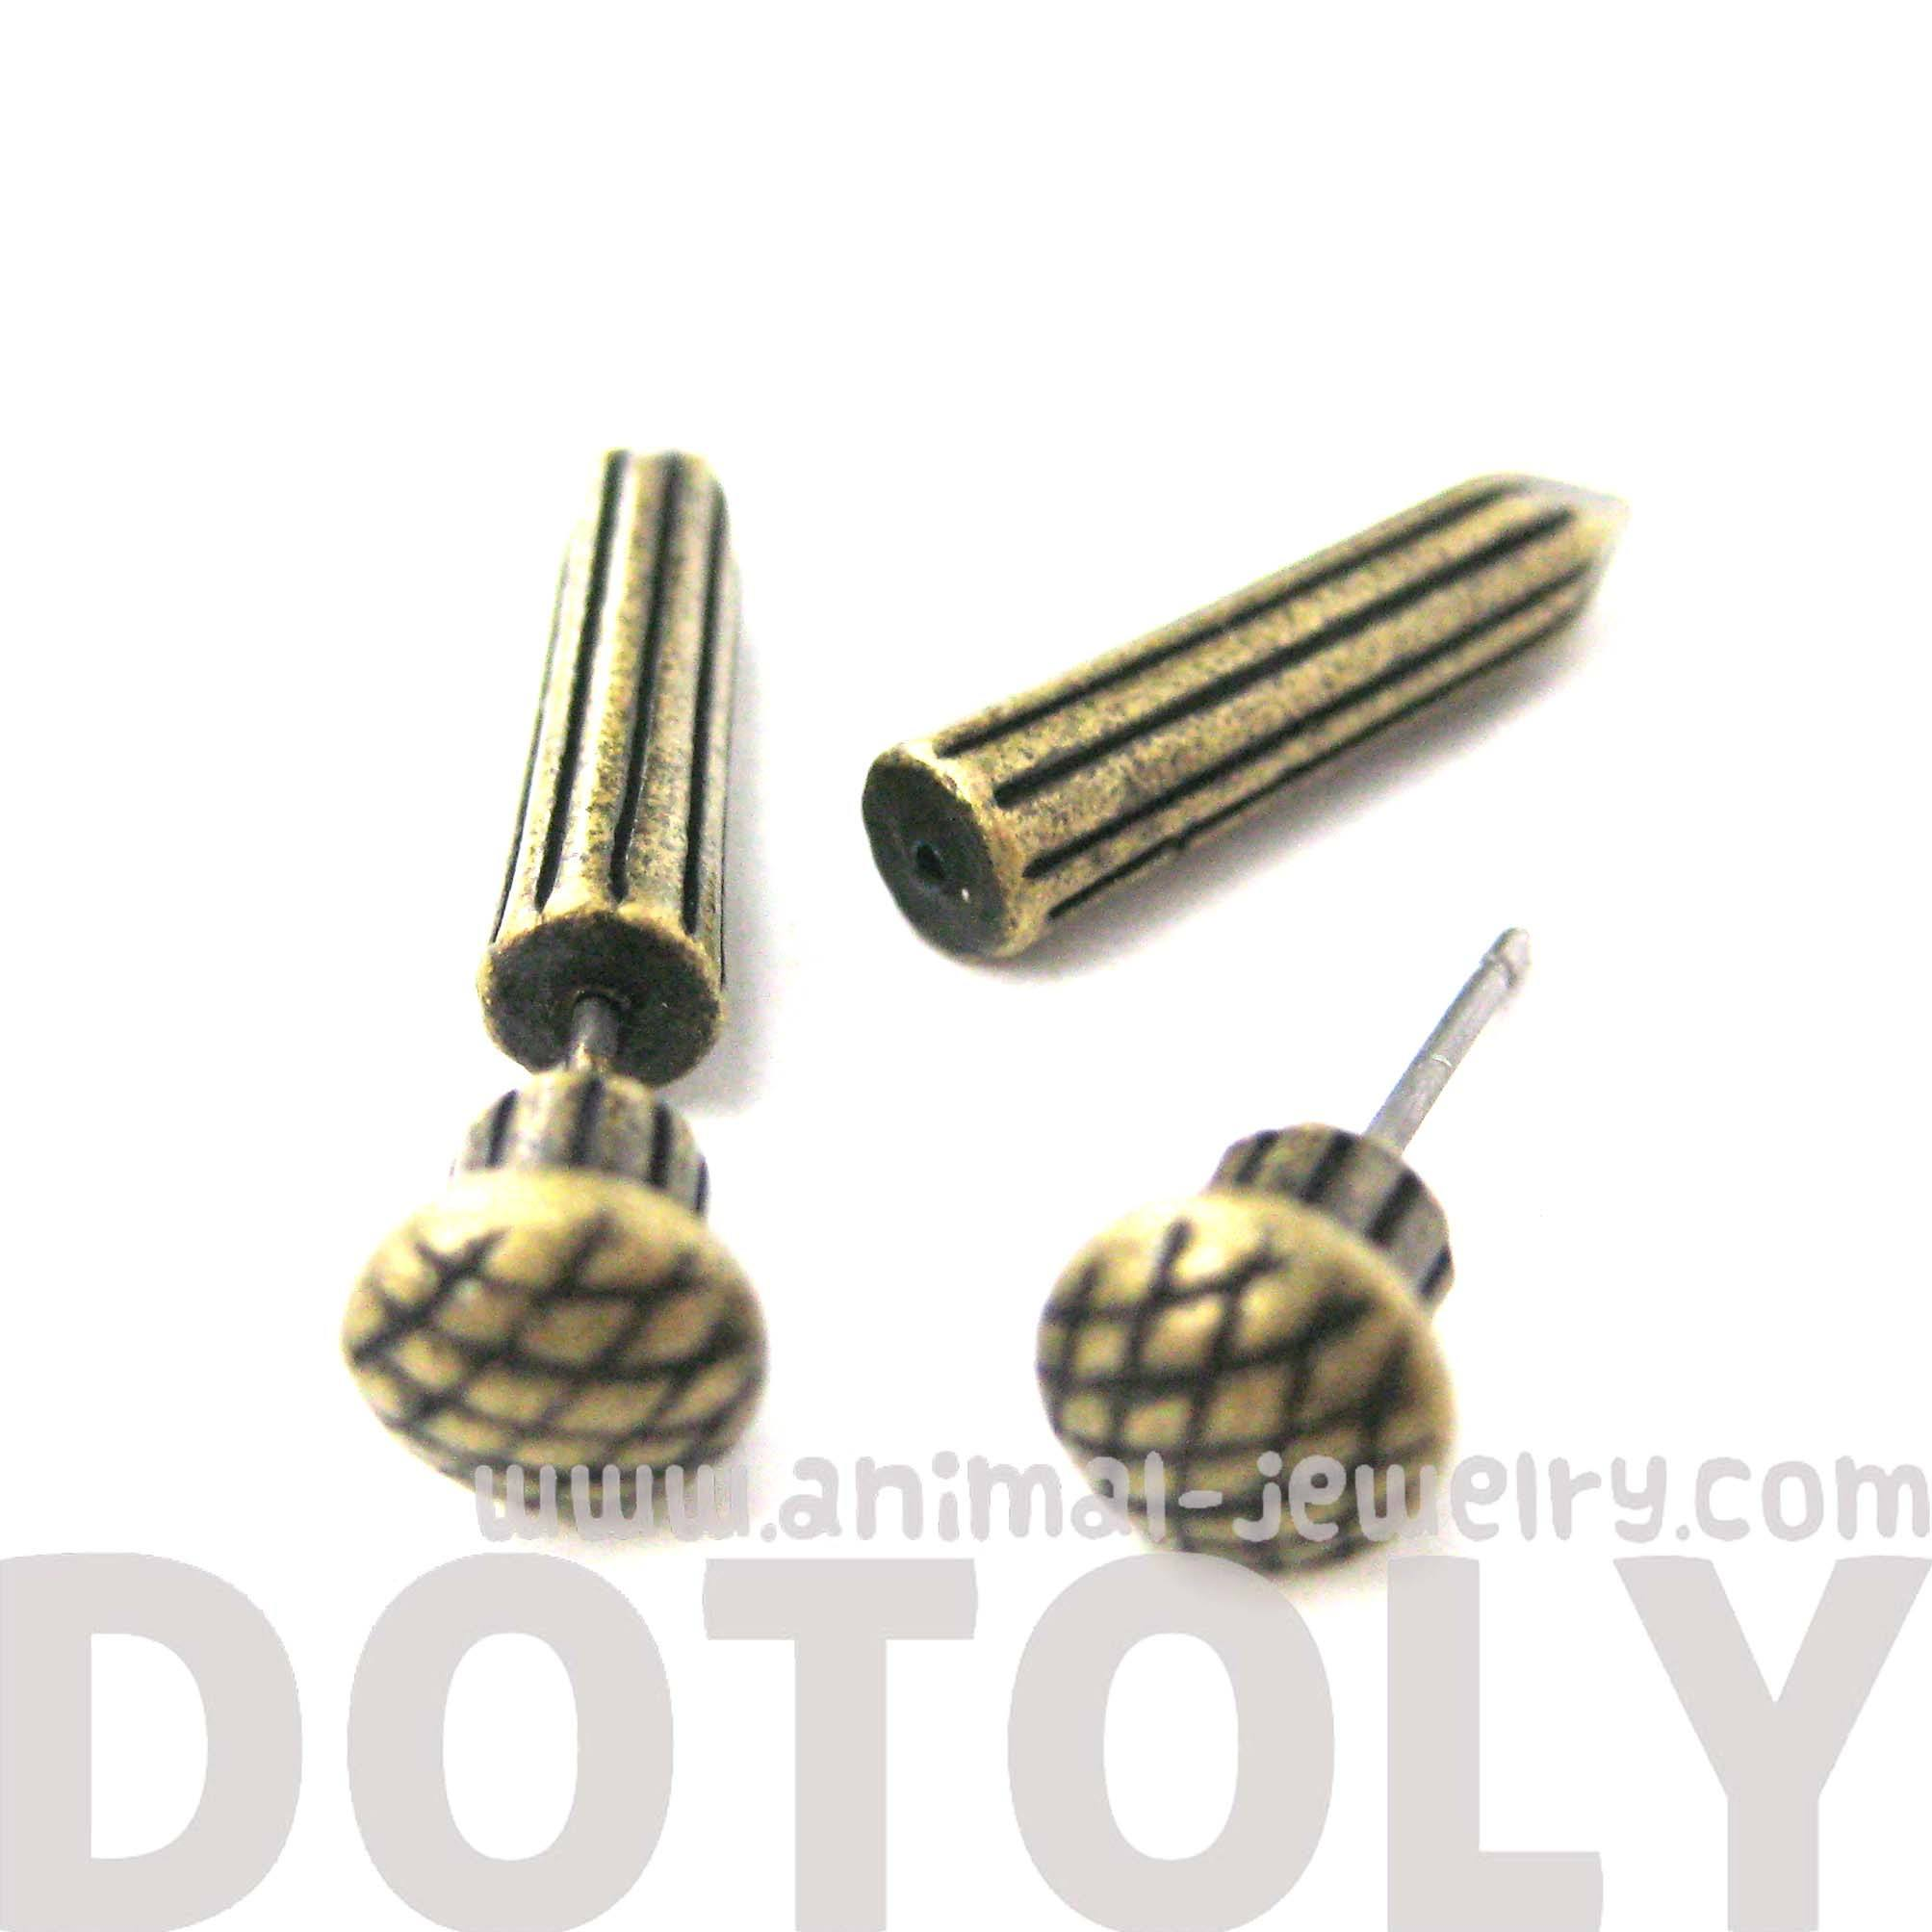 fake-gauge-earrings-nail-spike-stake-shaped-faux-plug-stud-earrings-in-brass